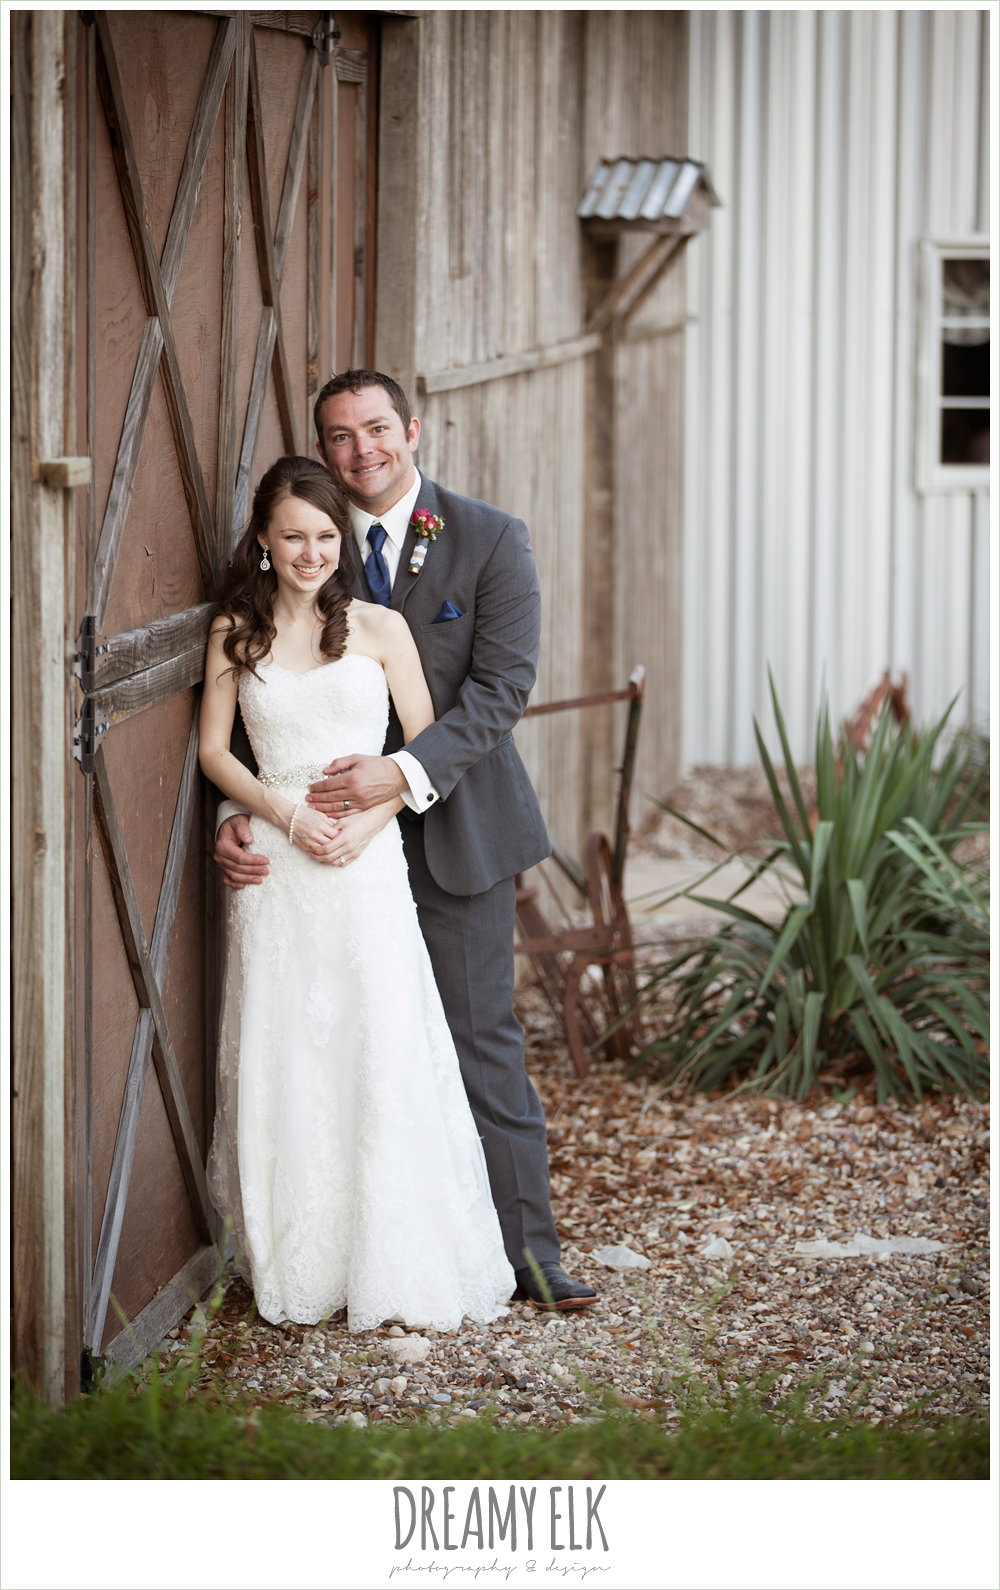 strapless lace wedding dress with belt, gray suit and navy tie, pine lake ranch, rustic wedding photo {dreamy elk photography and design}